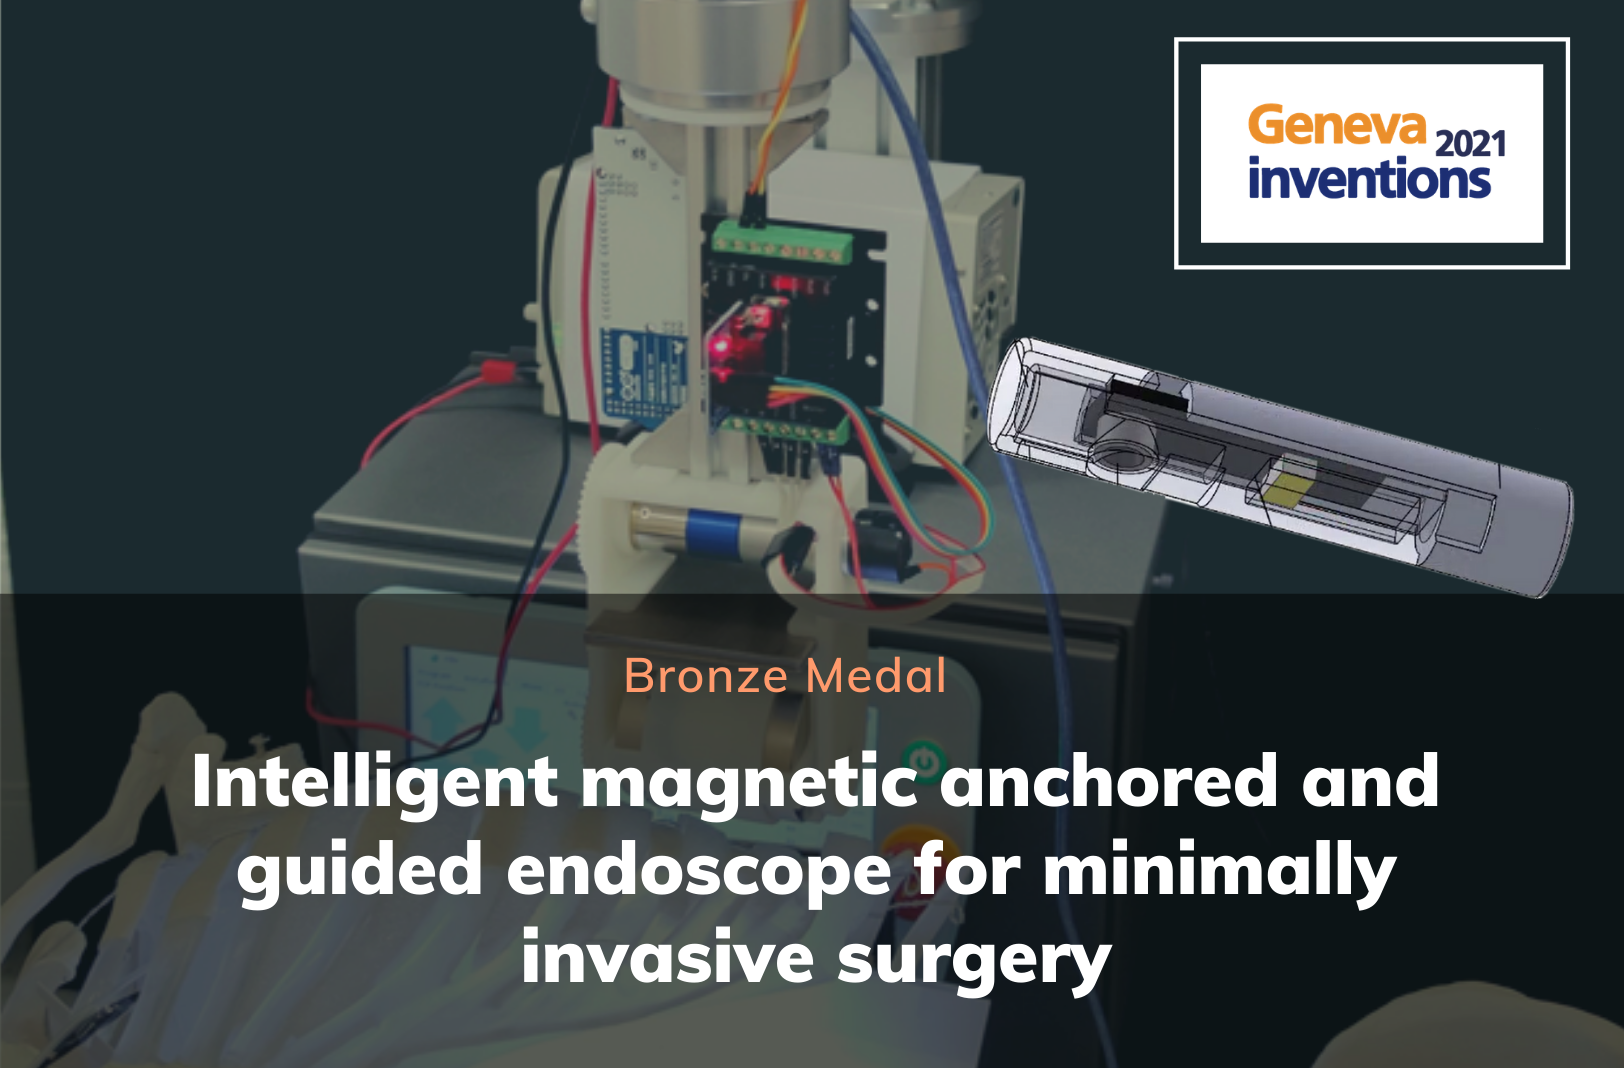 Bronze Medal: Intelligent magnetic anchored and guided endoscope for minimally invasive surgery